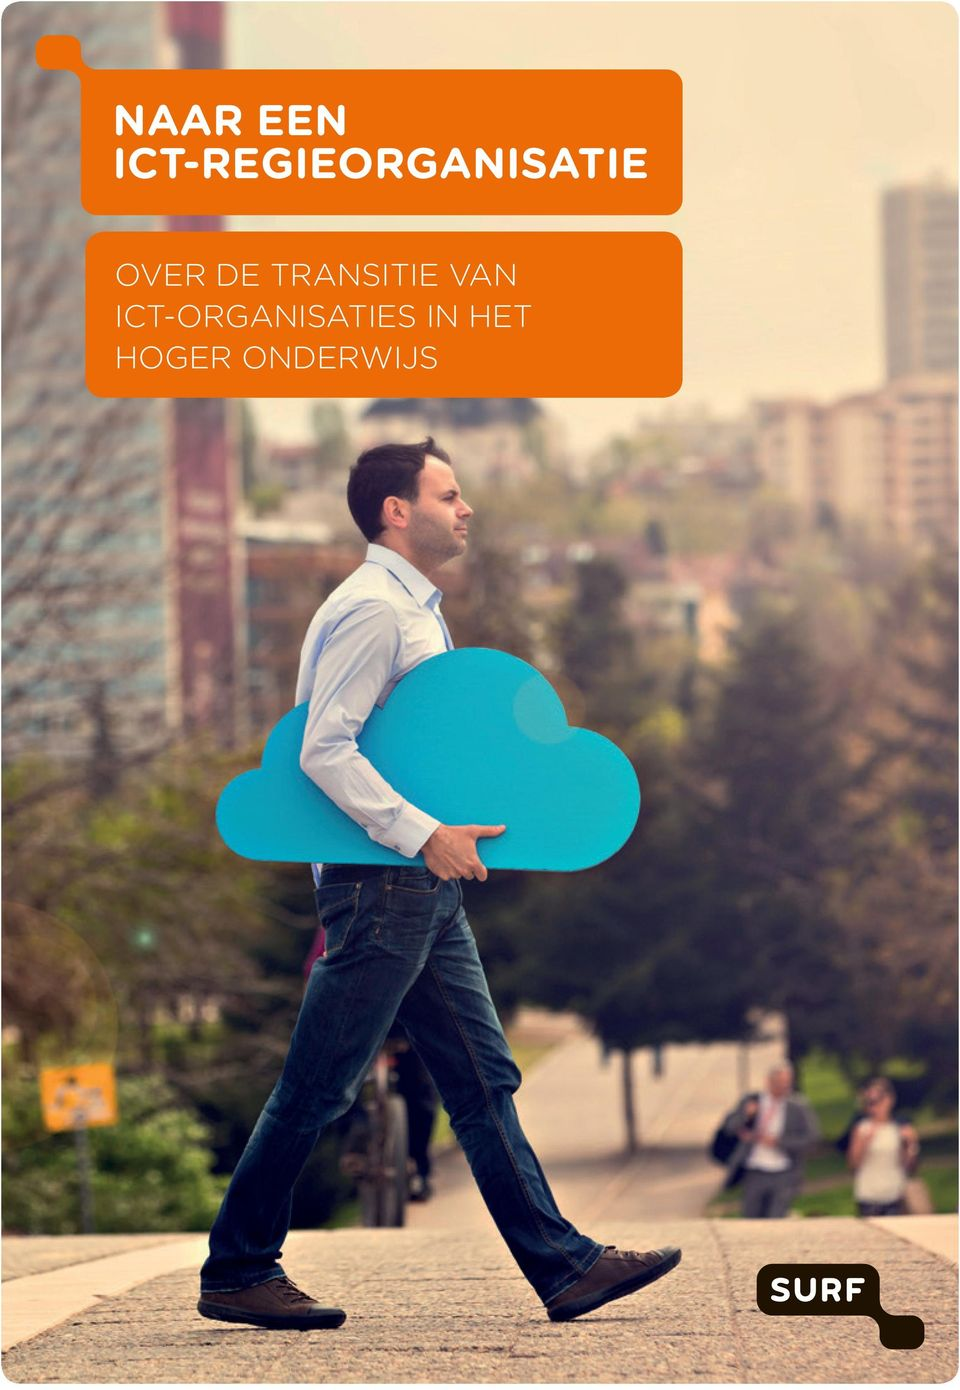 OVER DE TRANSITIE VAN